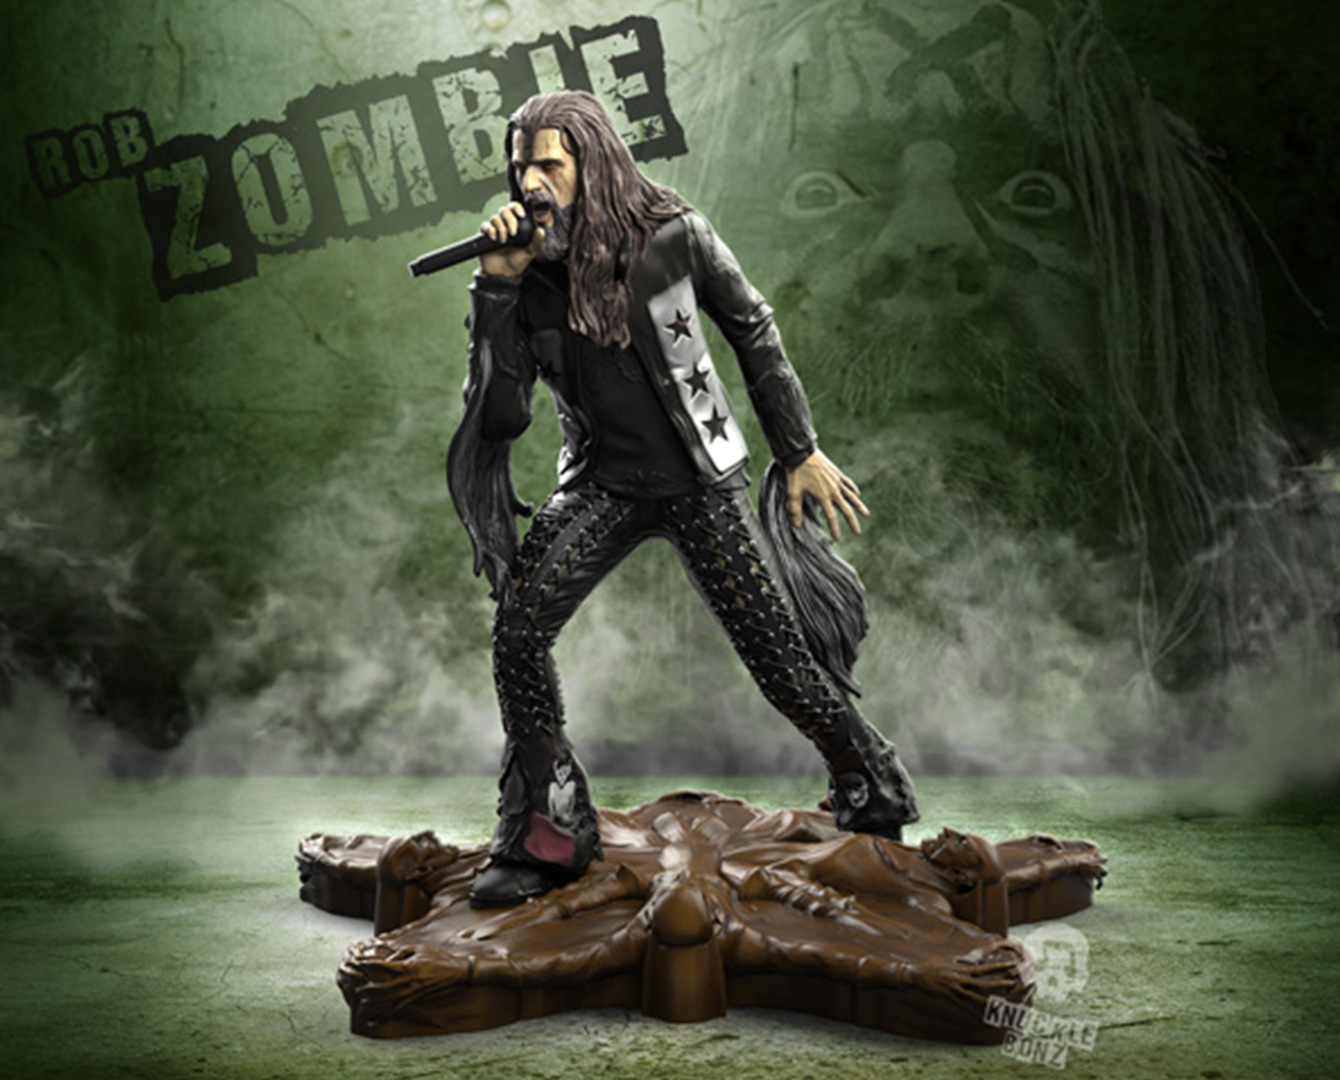 Rob Zombie Rock Iconz Statue – Knucklebonz, Inc.